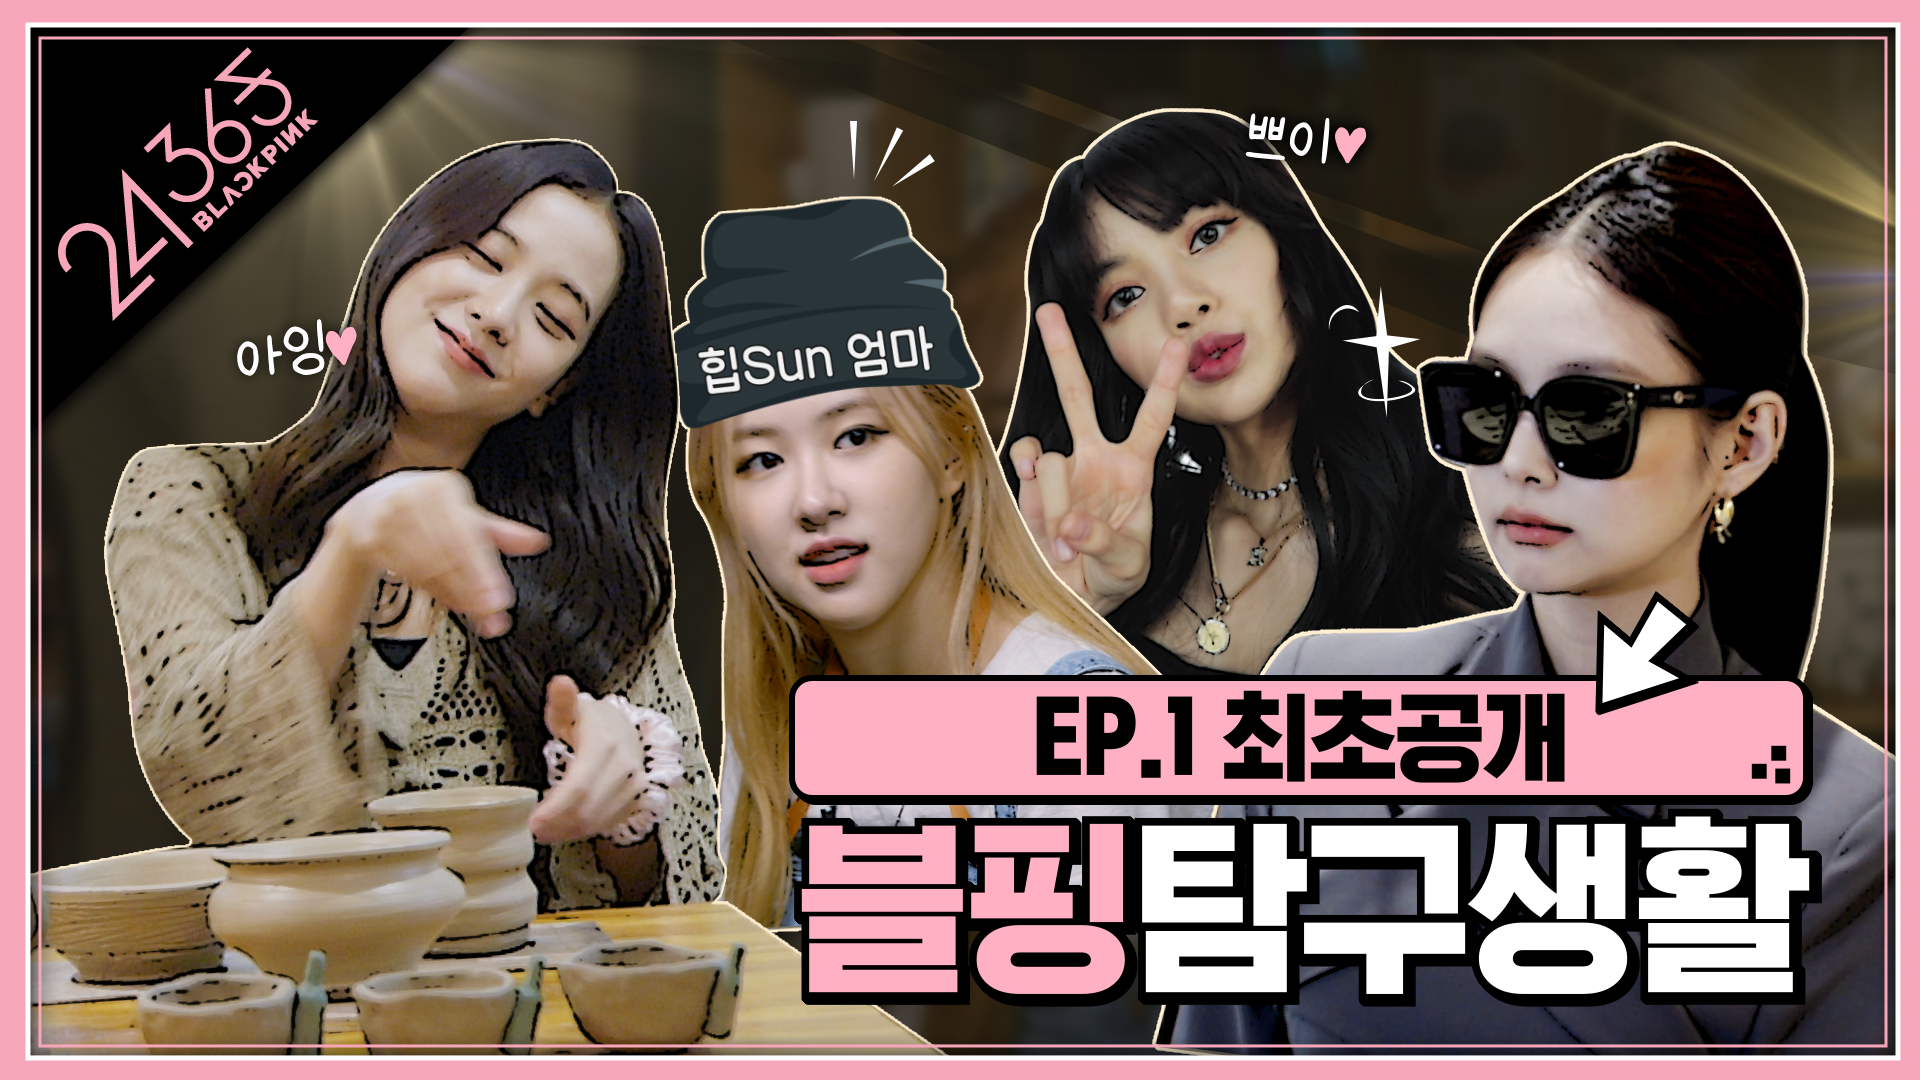 BLACKPINK - '24/365 with BLACKPINK' EP.1